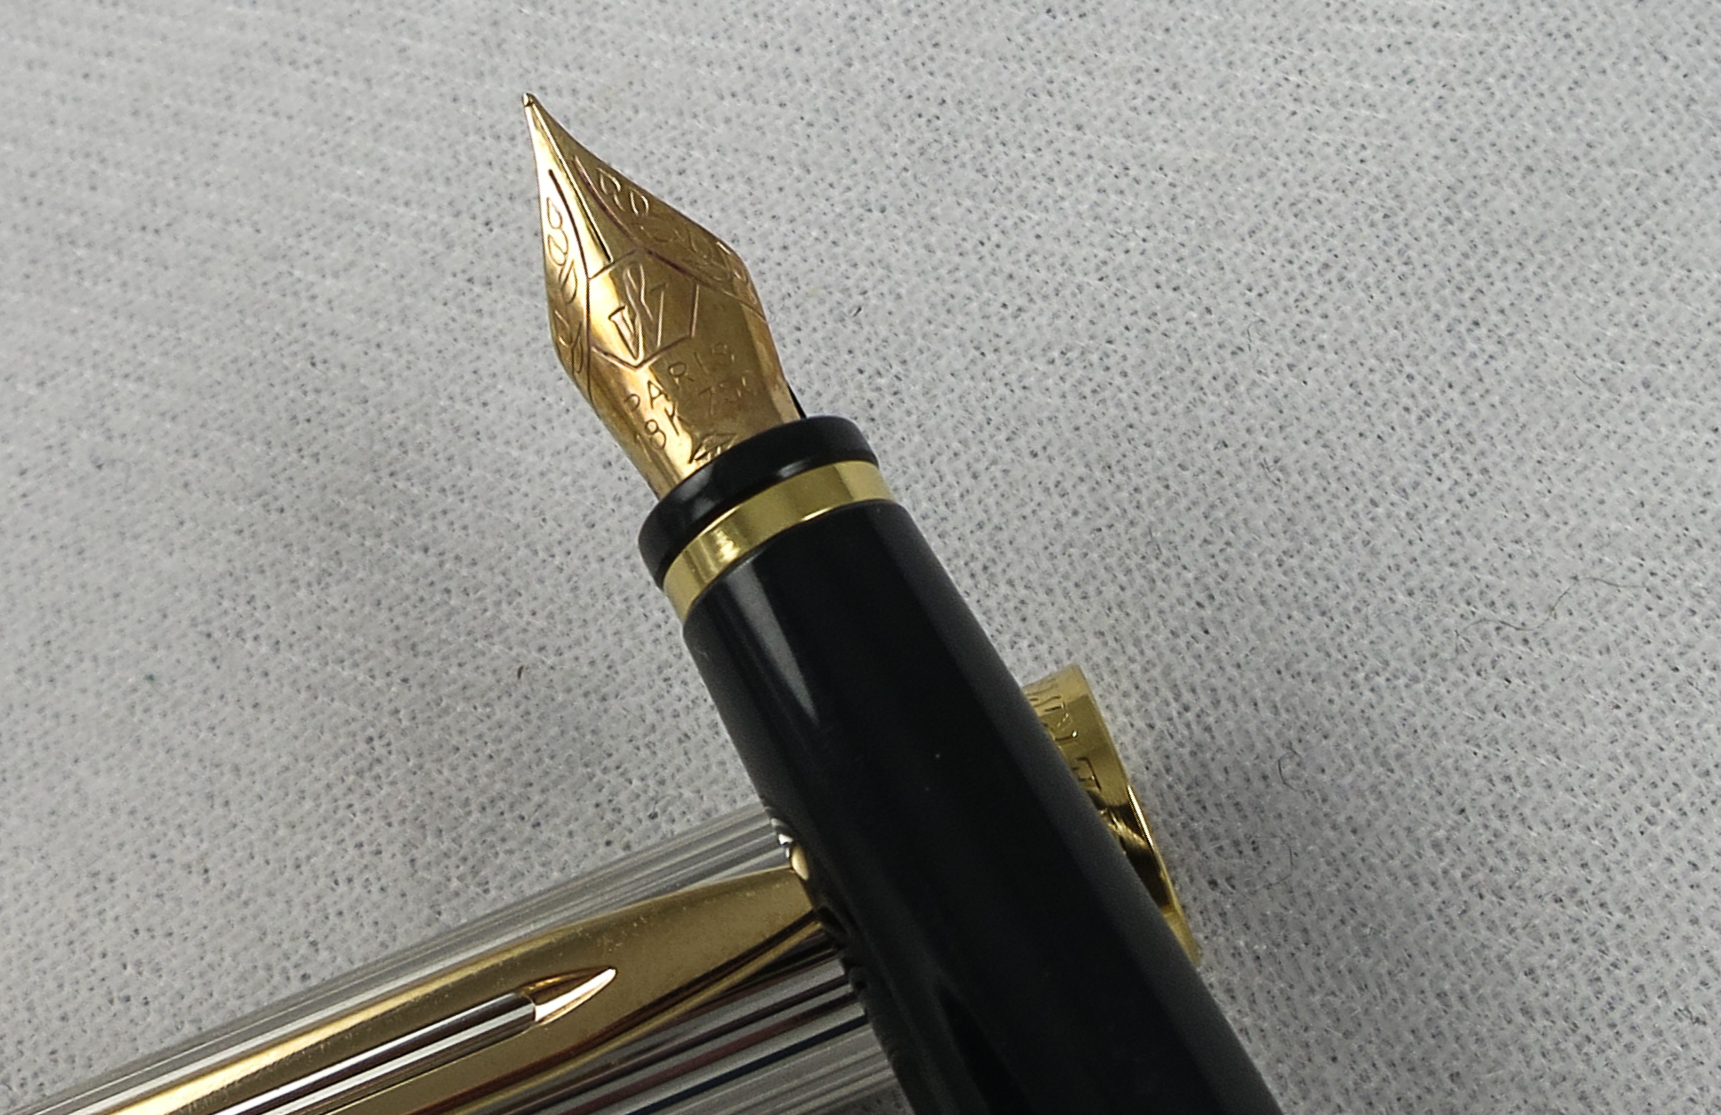 French Waterman Preface - Silver and Gold (Pen 2235)